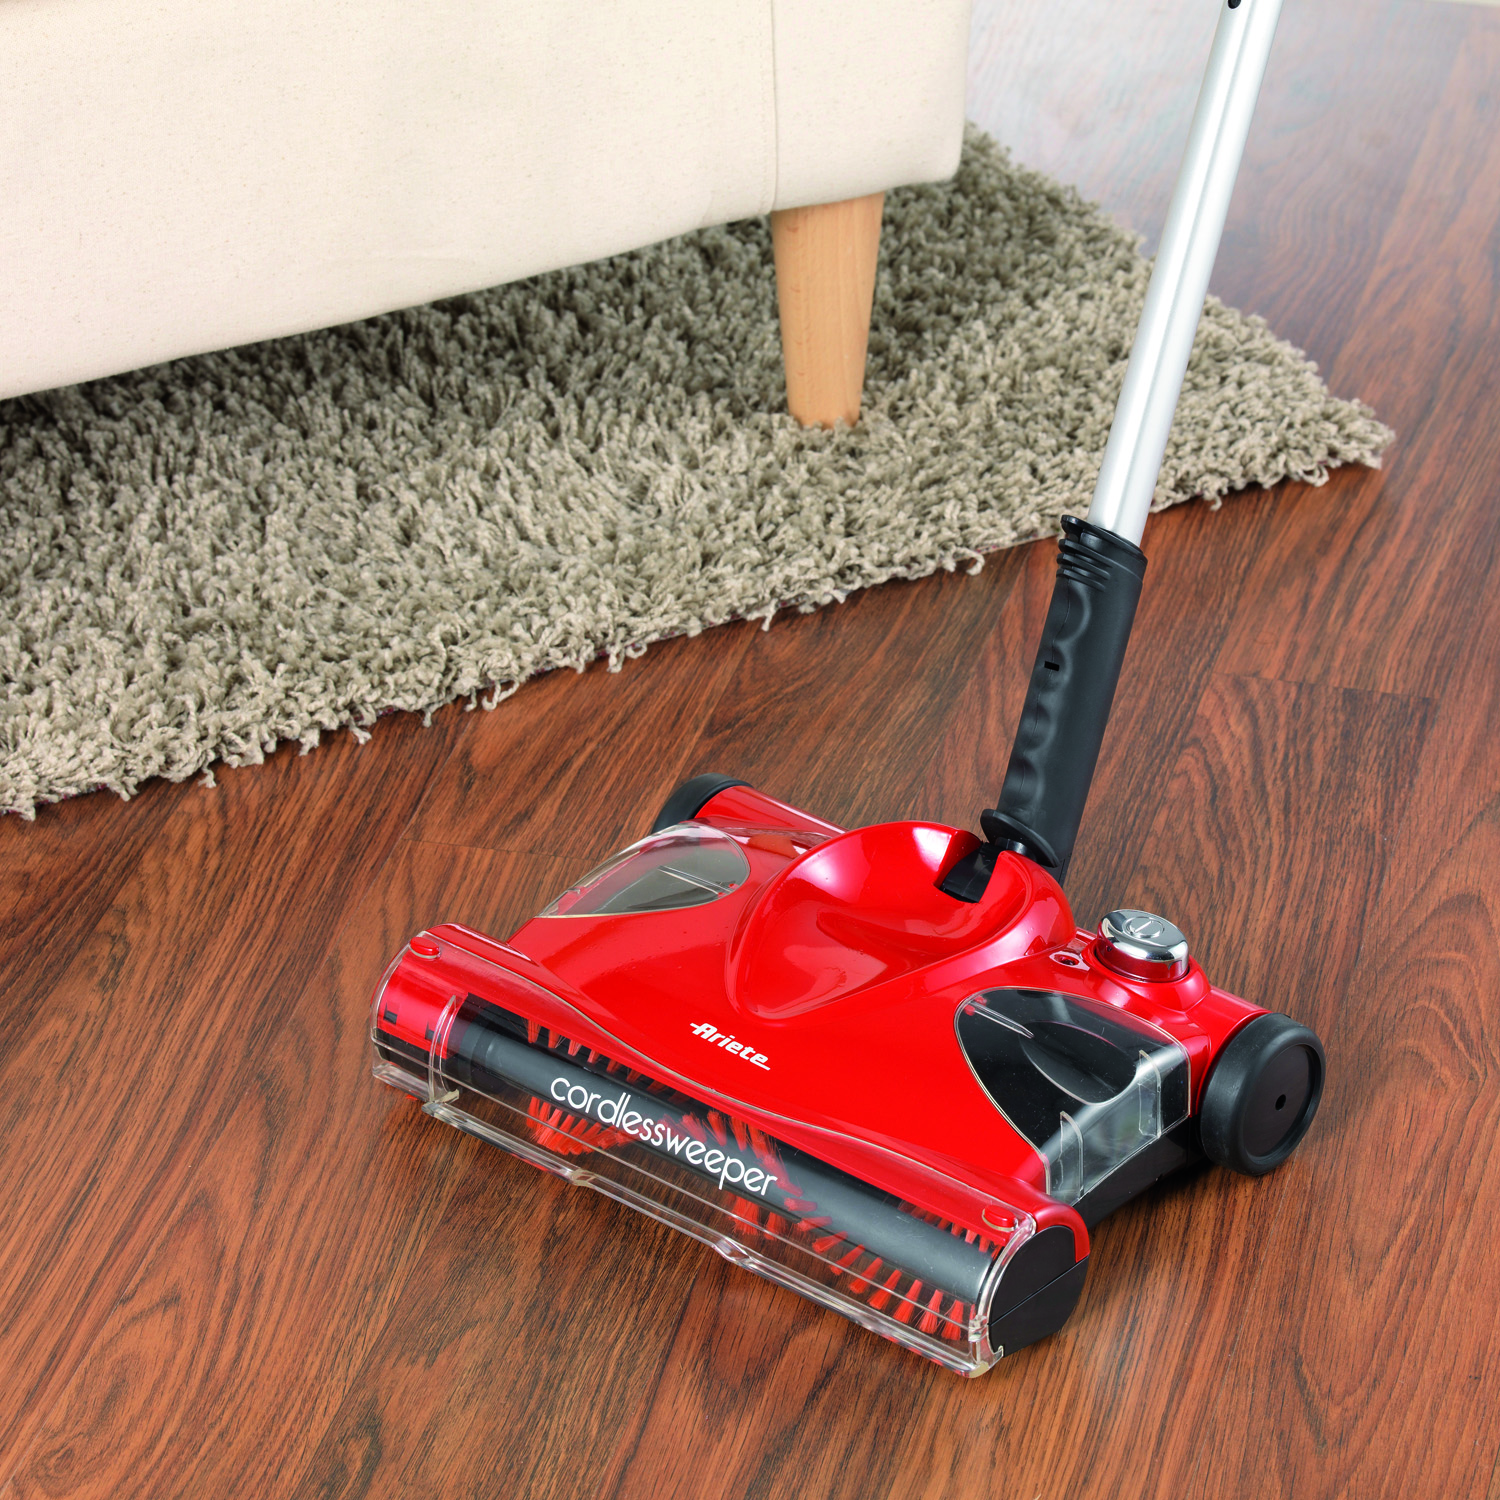 Cordless sweeper ariete for Ariete cordless sweeper